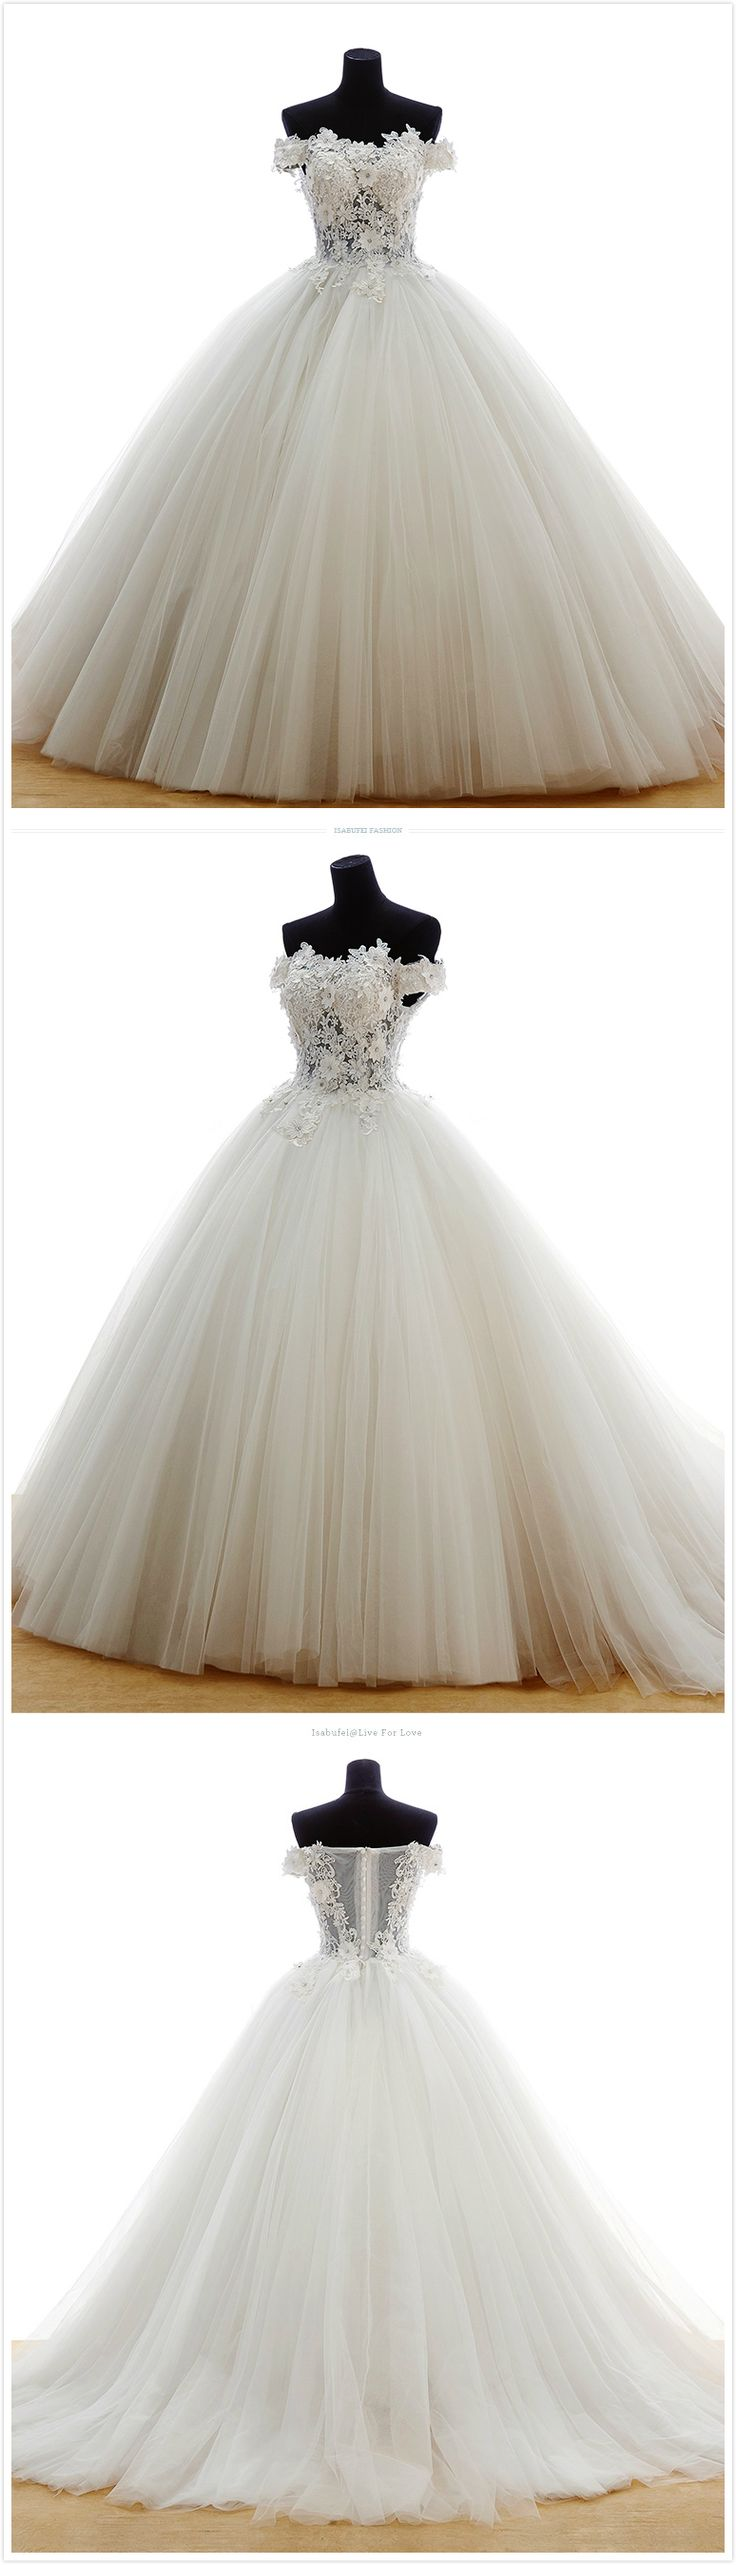 Bridal gown made of tulle with embroidered and floor length organza by hand! #wedding dresses #bridal gown